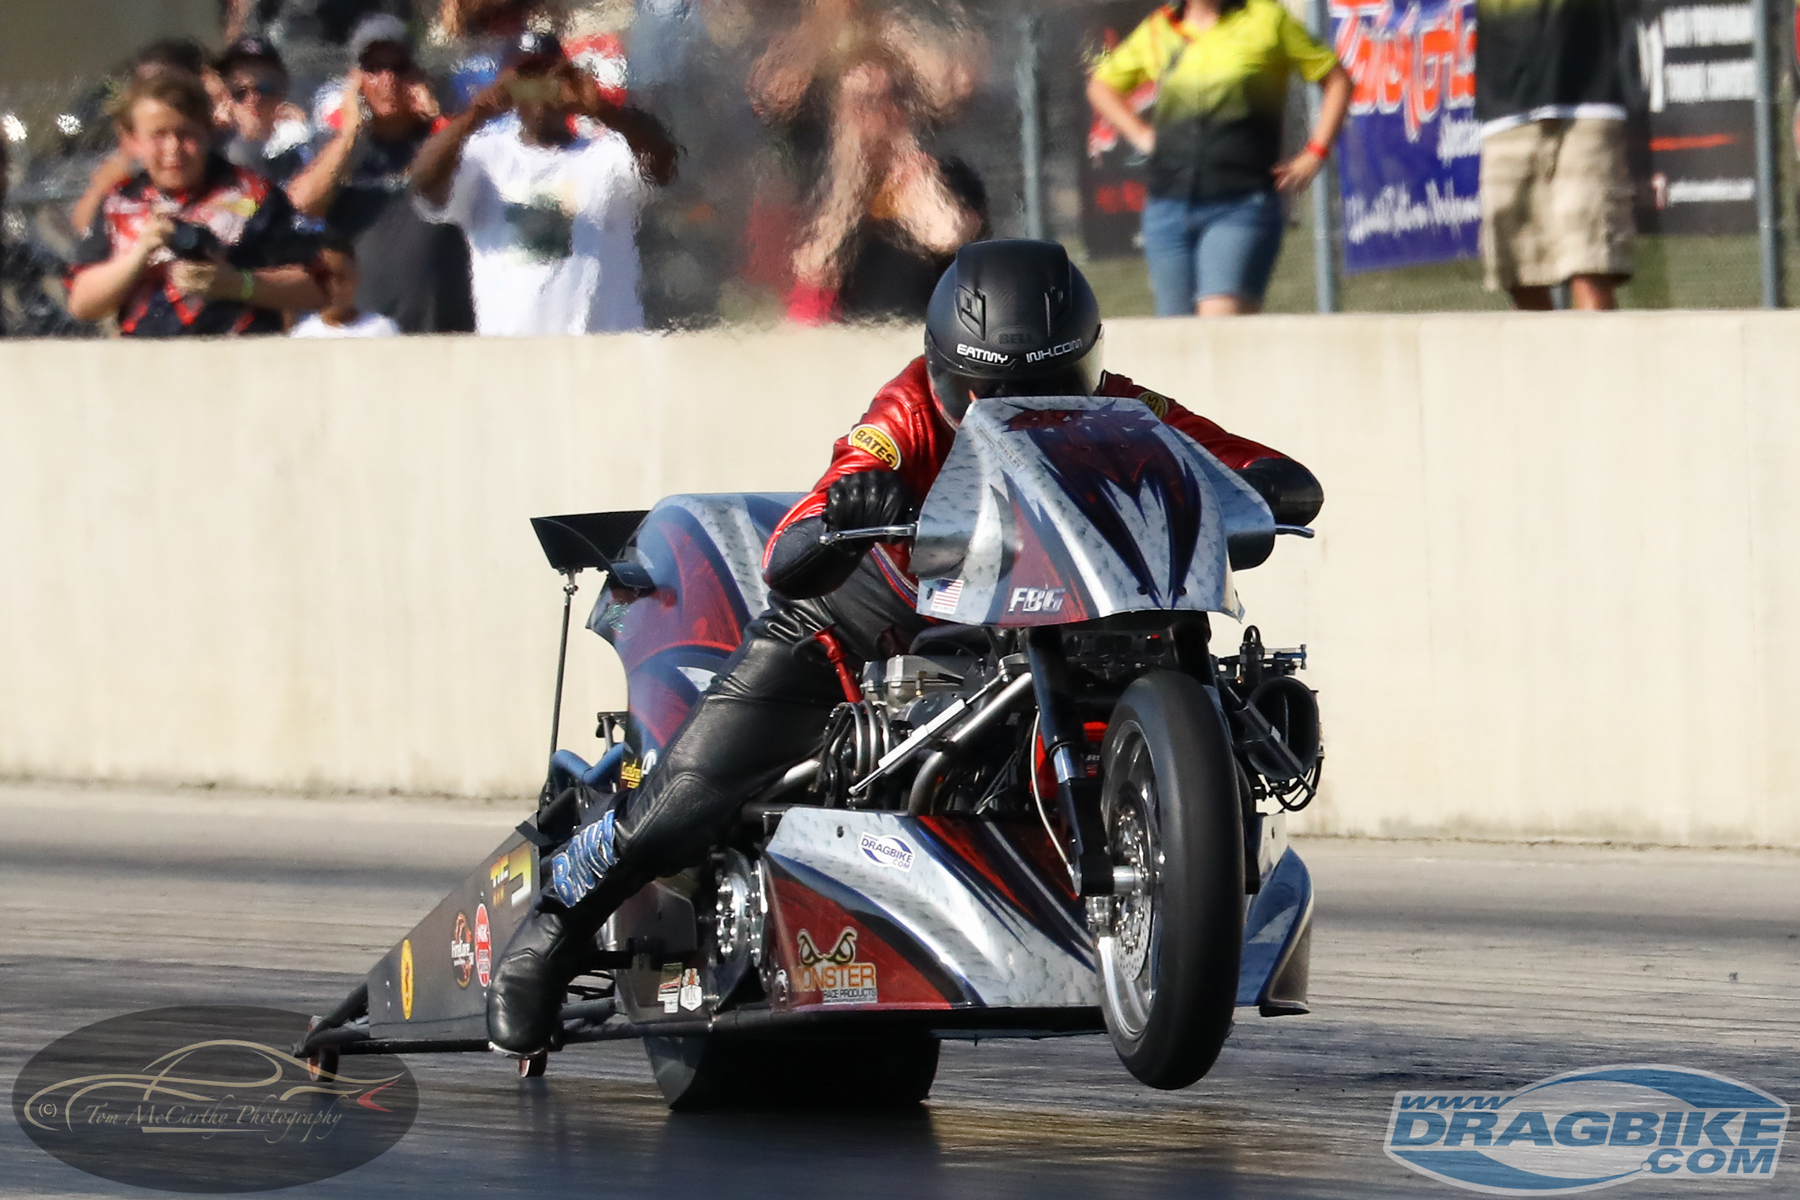 Top Fuel Motorcycle - Mitch Brown